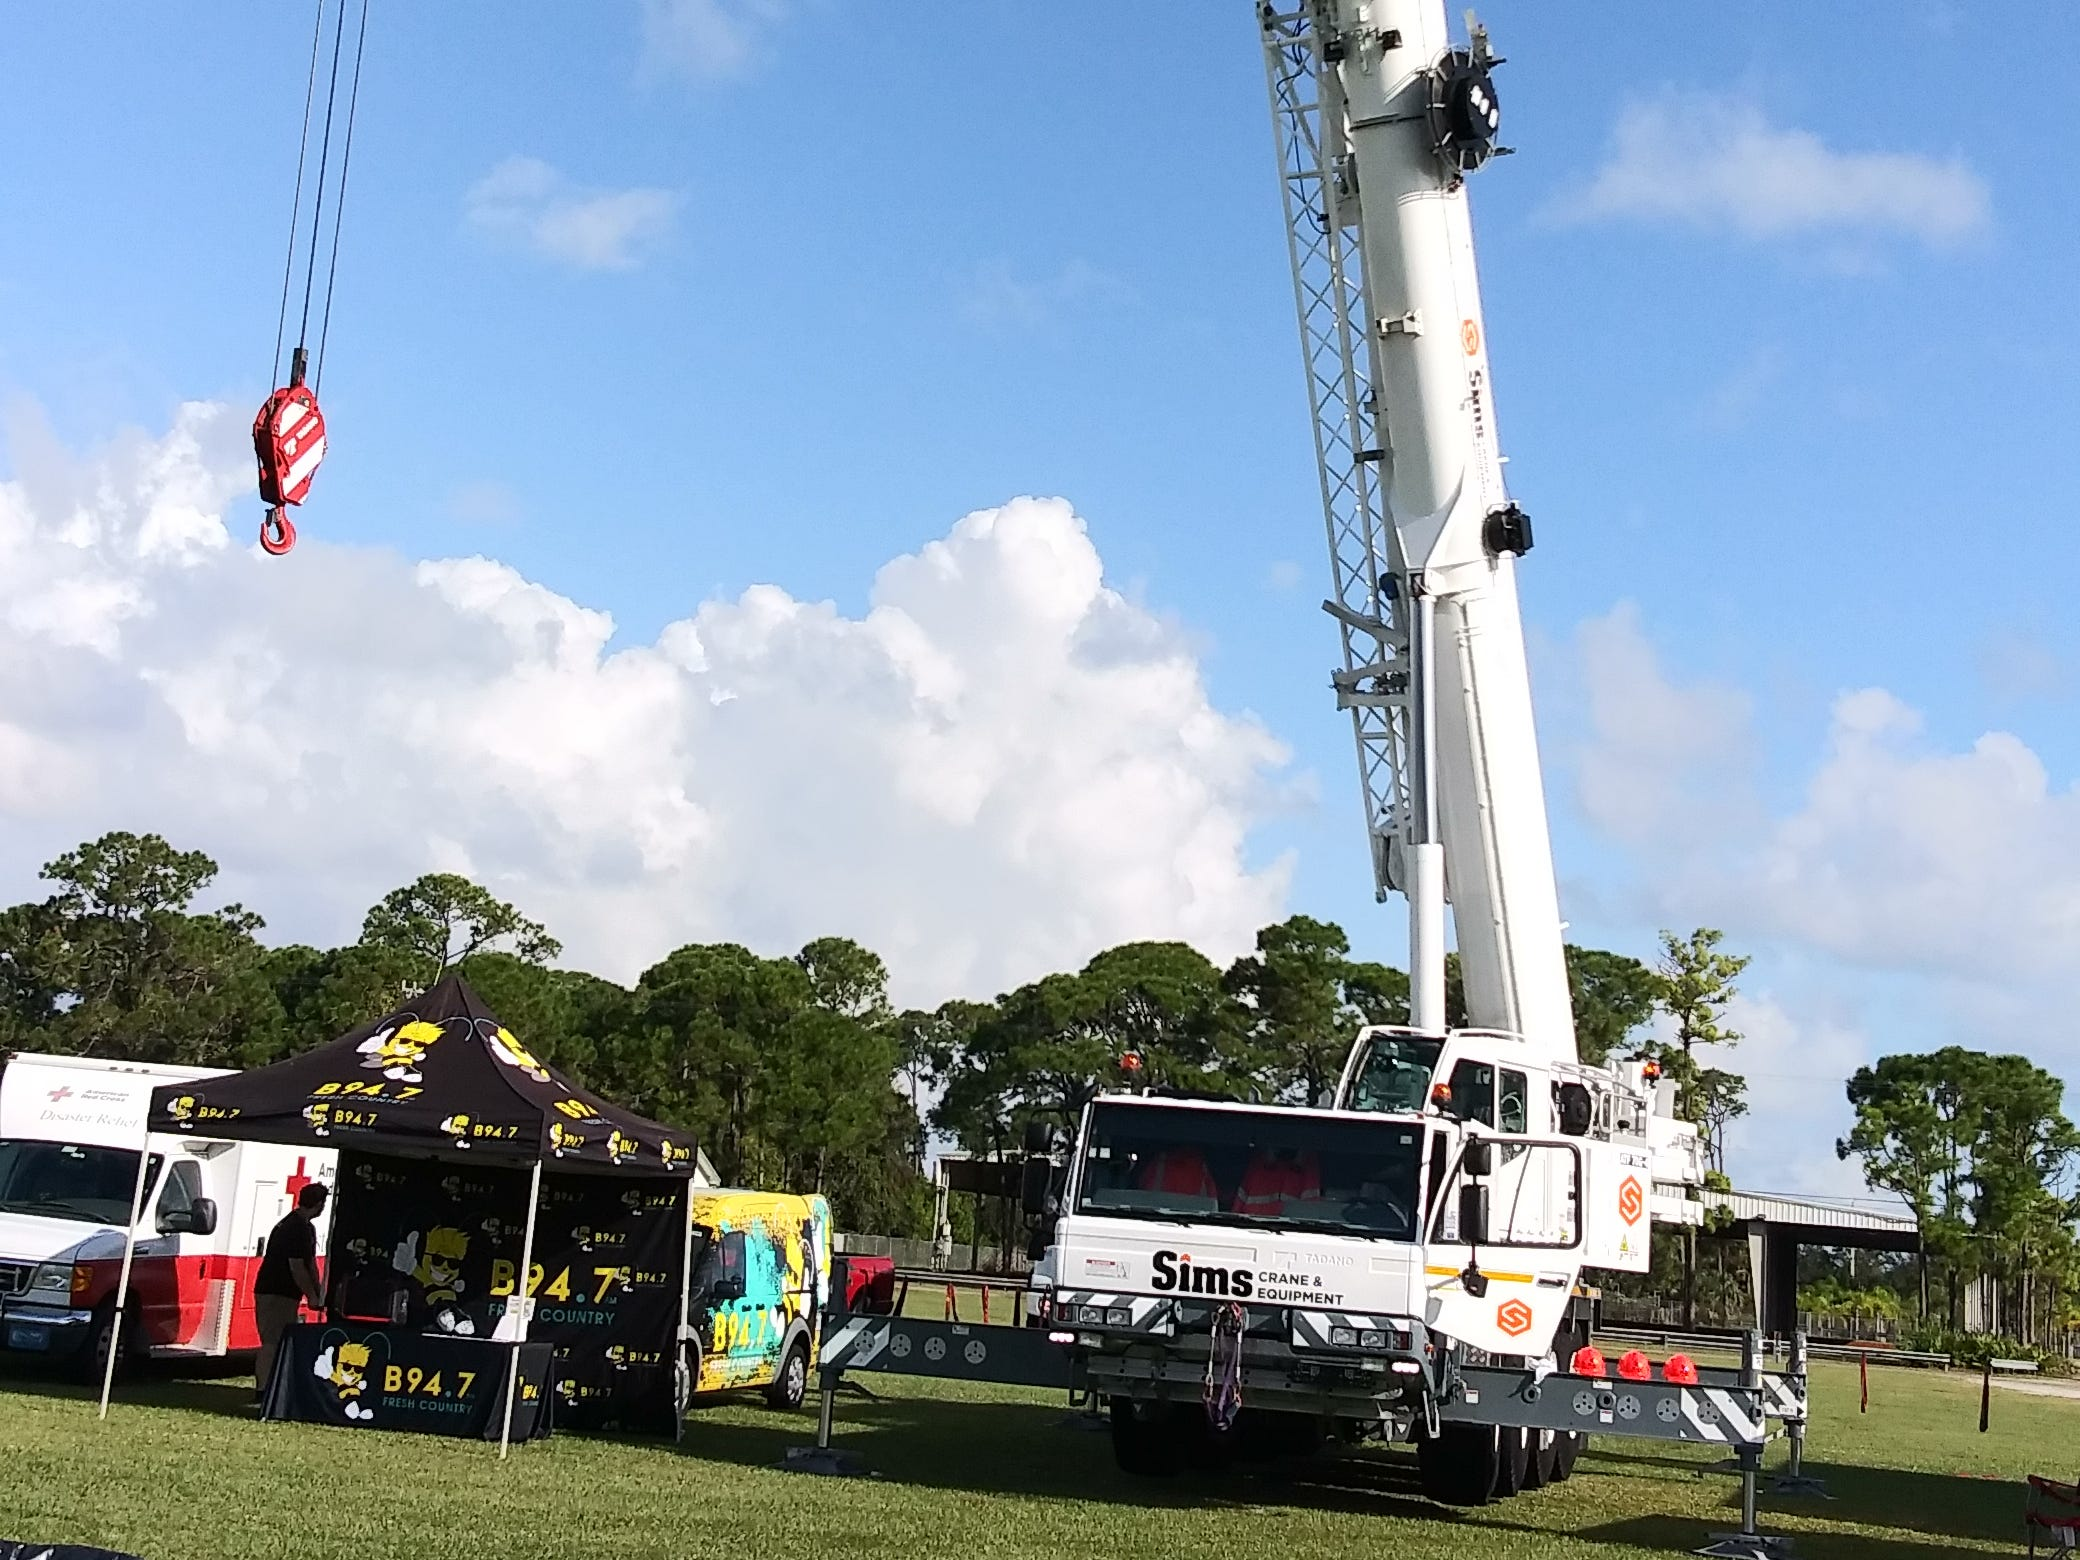 Sims Crane which can stretch to 136 feet high.